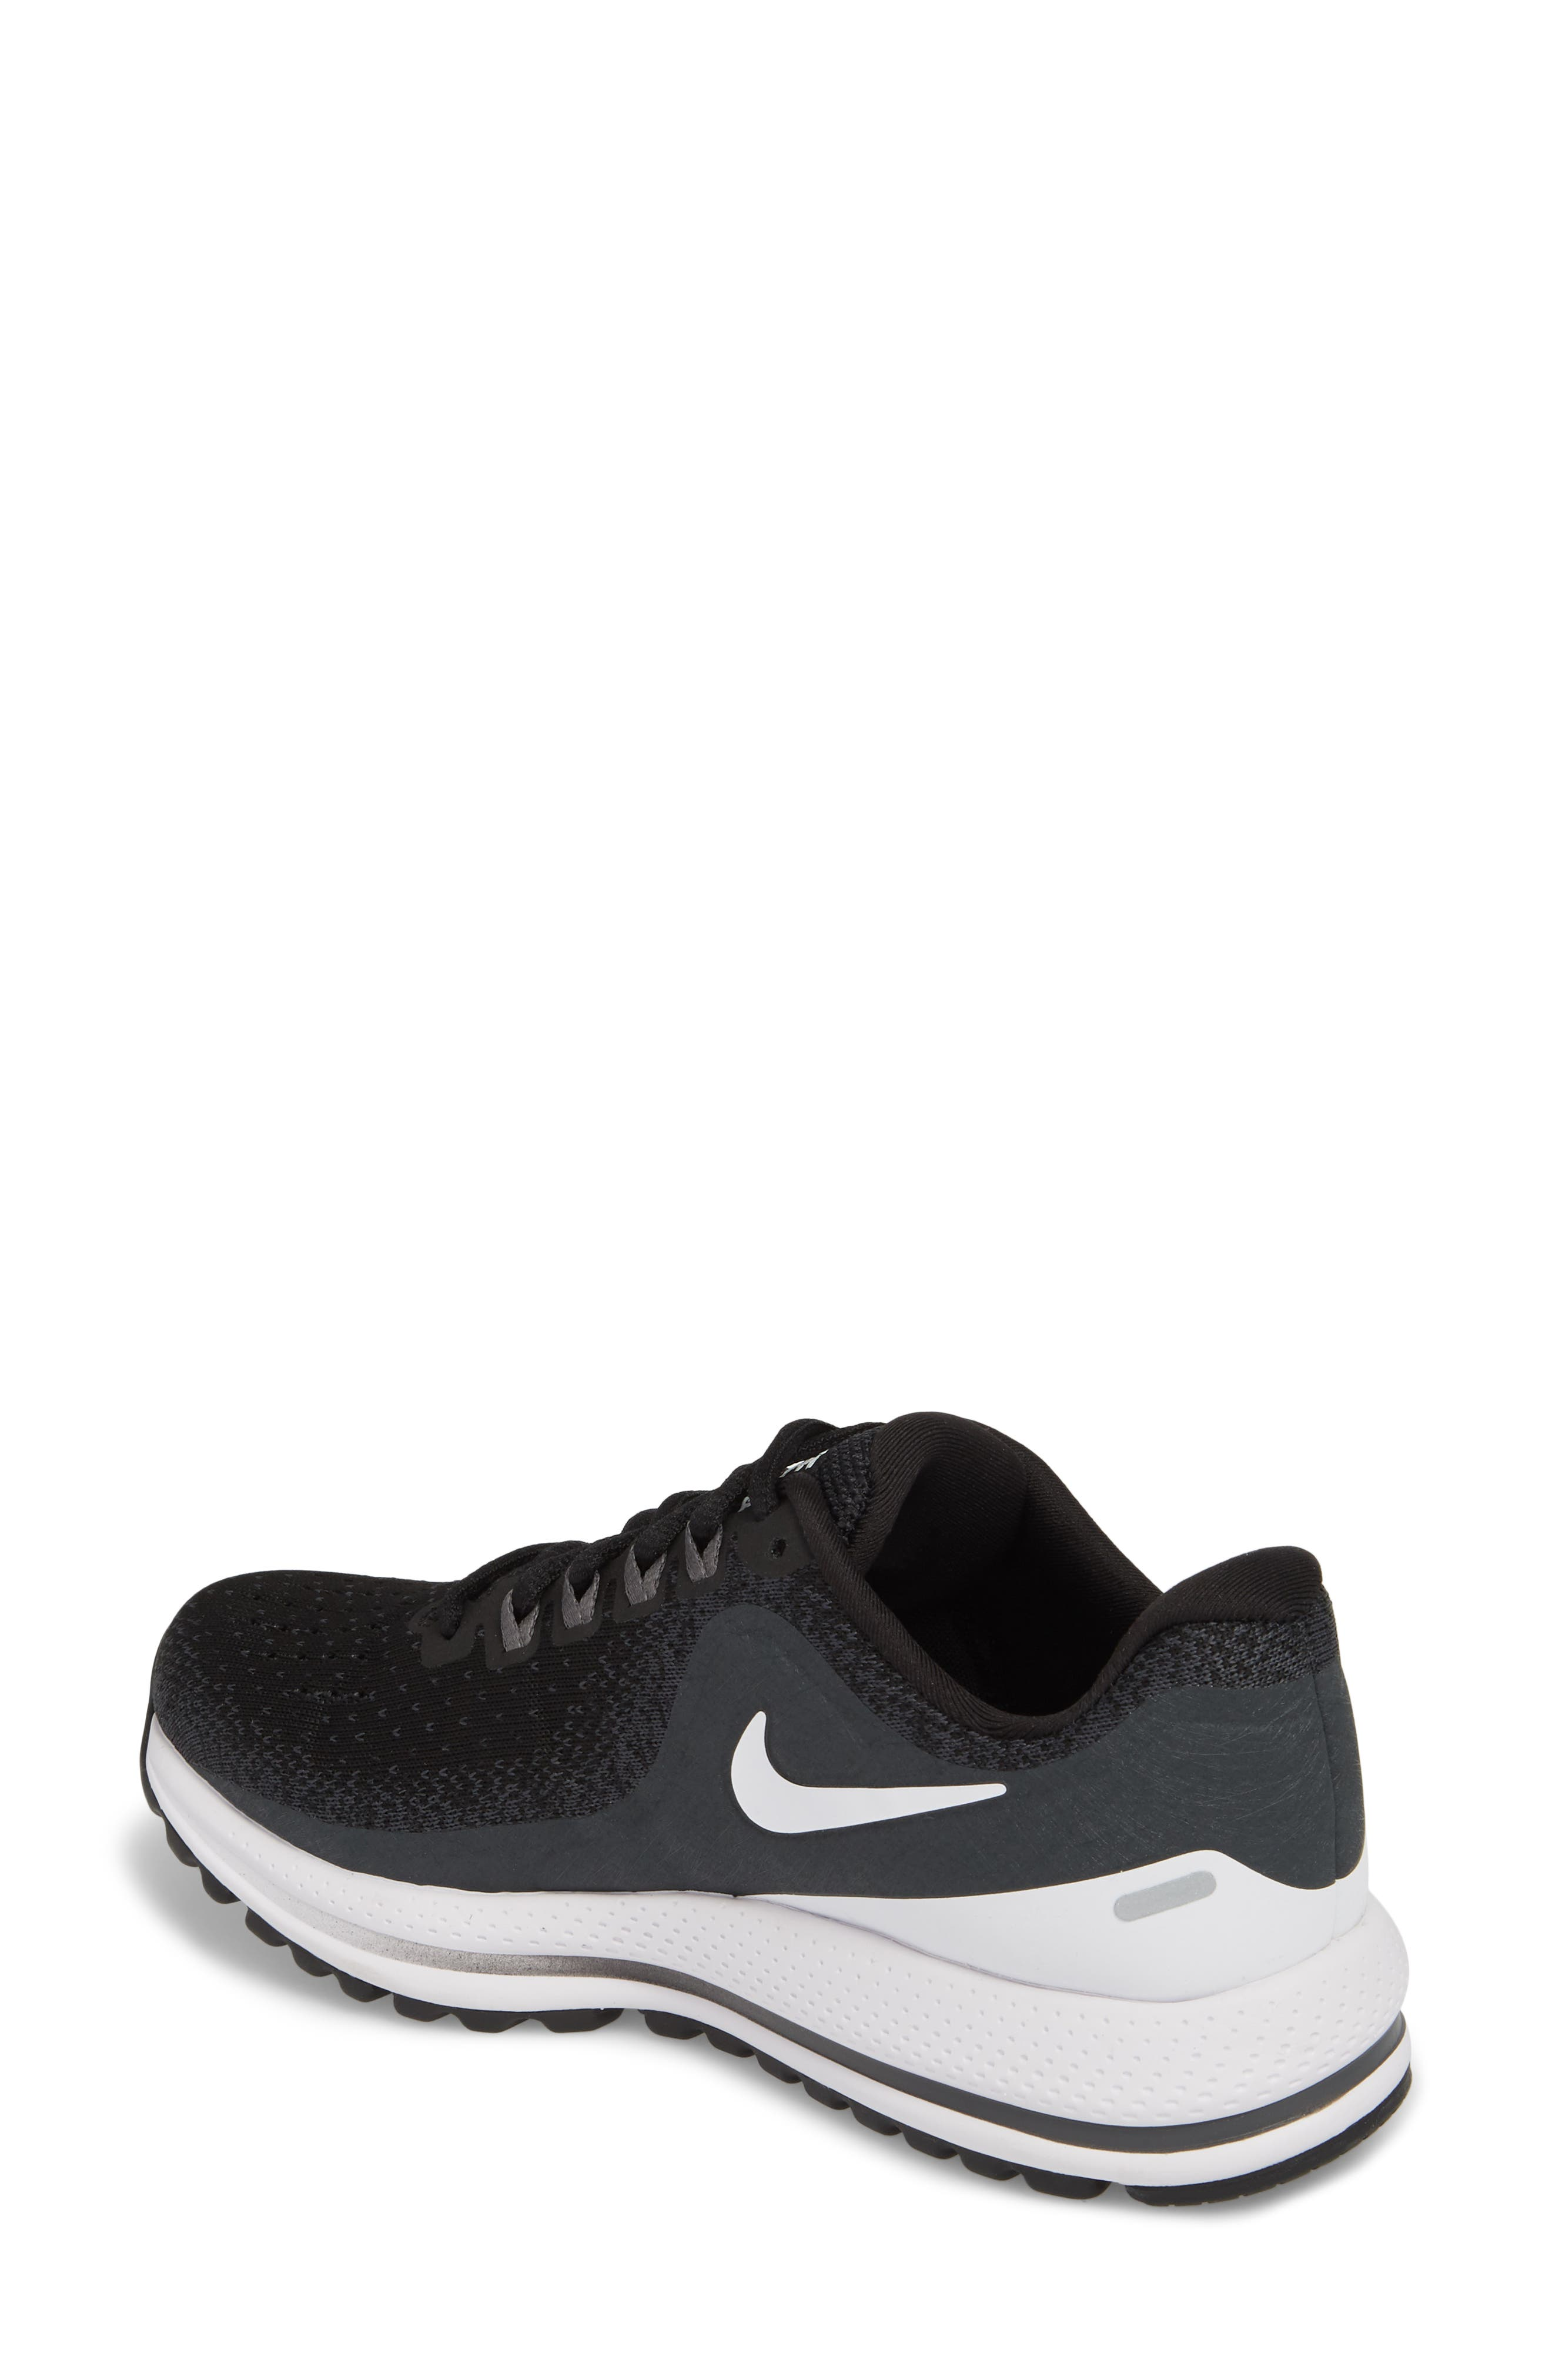 Air Zoom Vomero 13 Running Shoe,                             Alternate thumbnail 11, color,